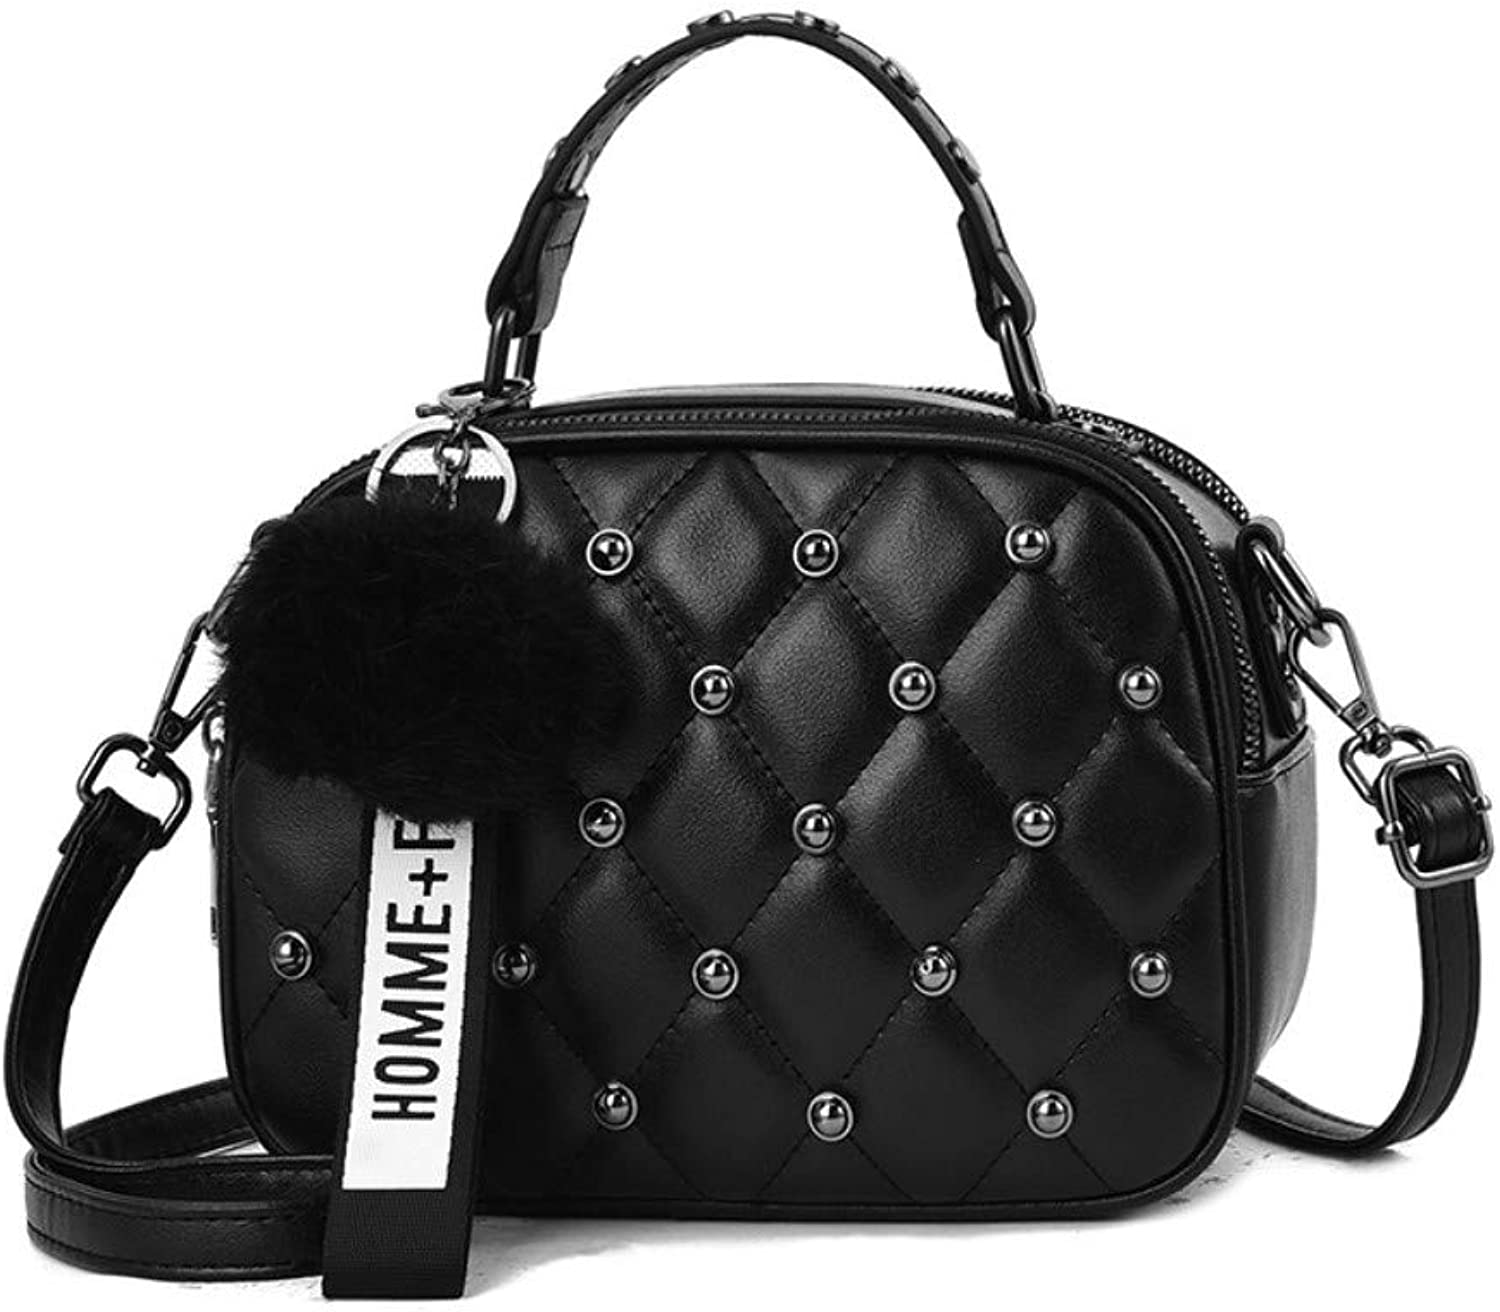 Z.H-H Wild Fashion, Small Fresh Lady Casual, Simple and Large-Capacity Personality Hand Shoulder Bag, Shoulder Bag, Rivets